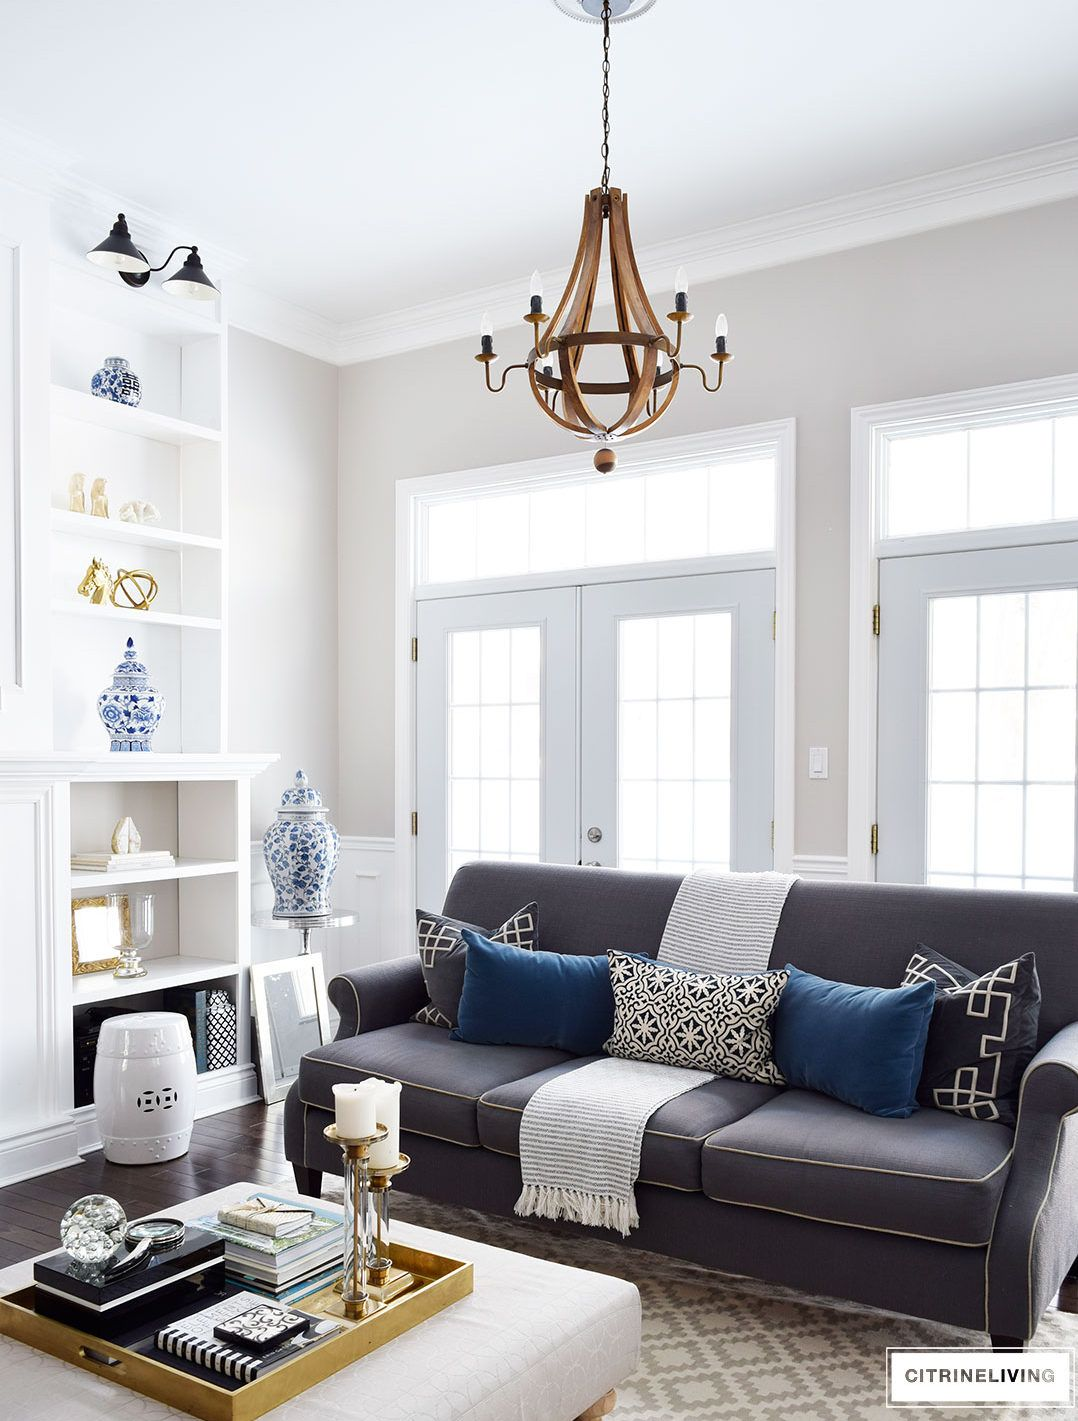 Organize Living Room Ideas: TOP DAILY TIPS TO KEEP LIFE ORGANIZED!